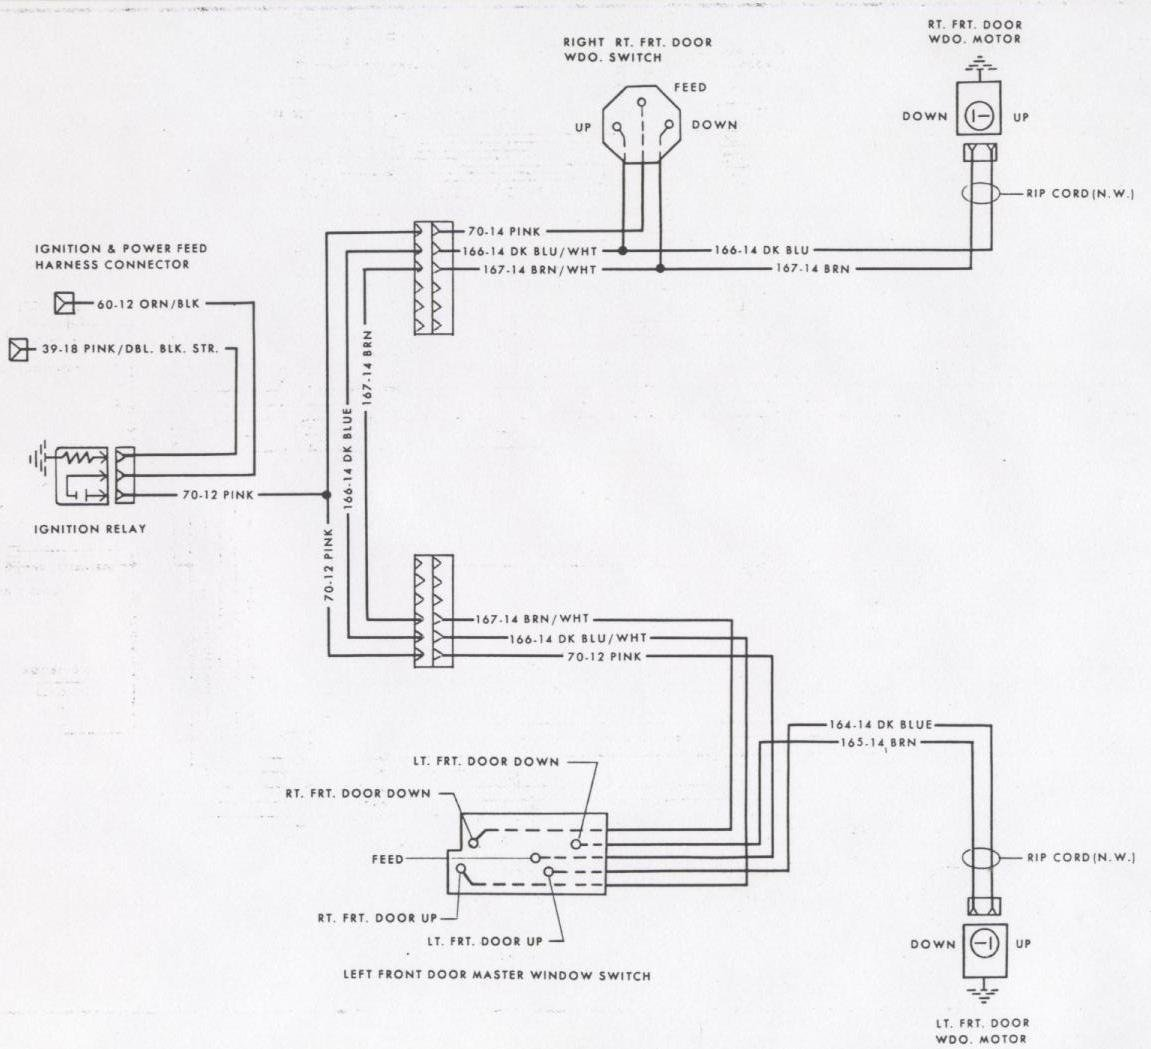 hight resolution of camaro wiring u0026 electrical informationfactory wiring diagrams for 1980 camaro 18